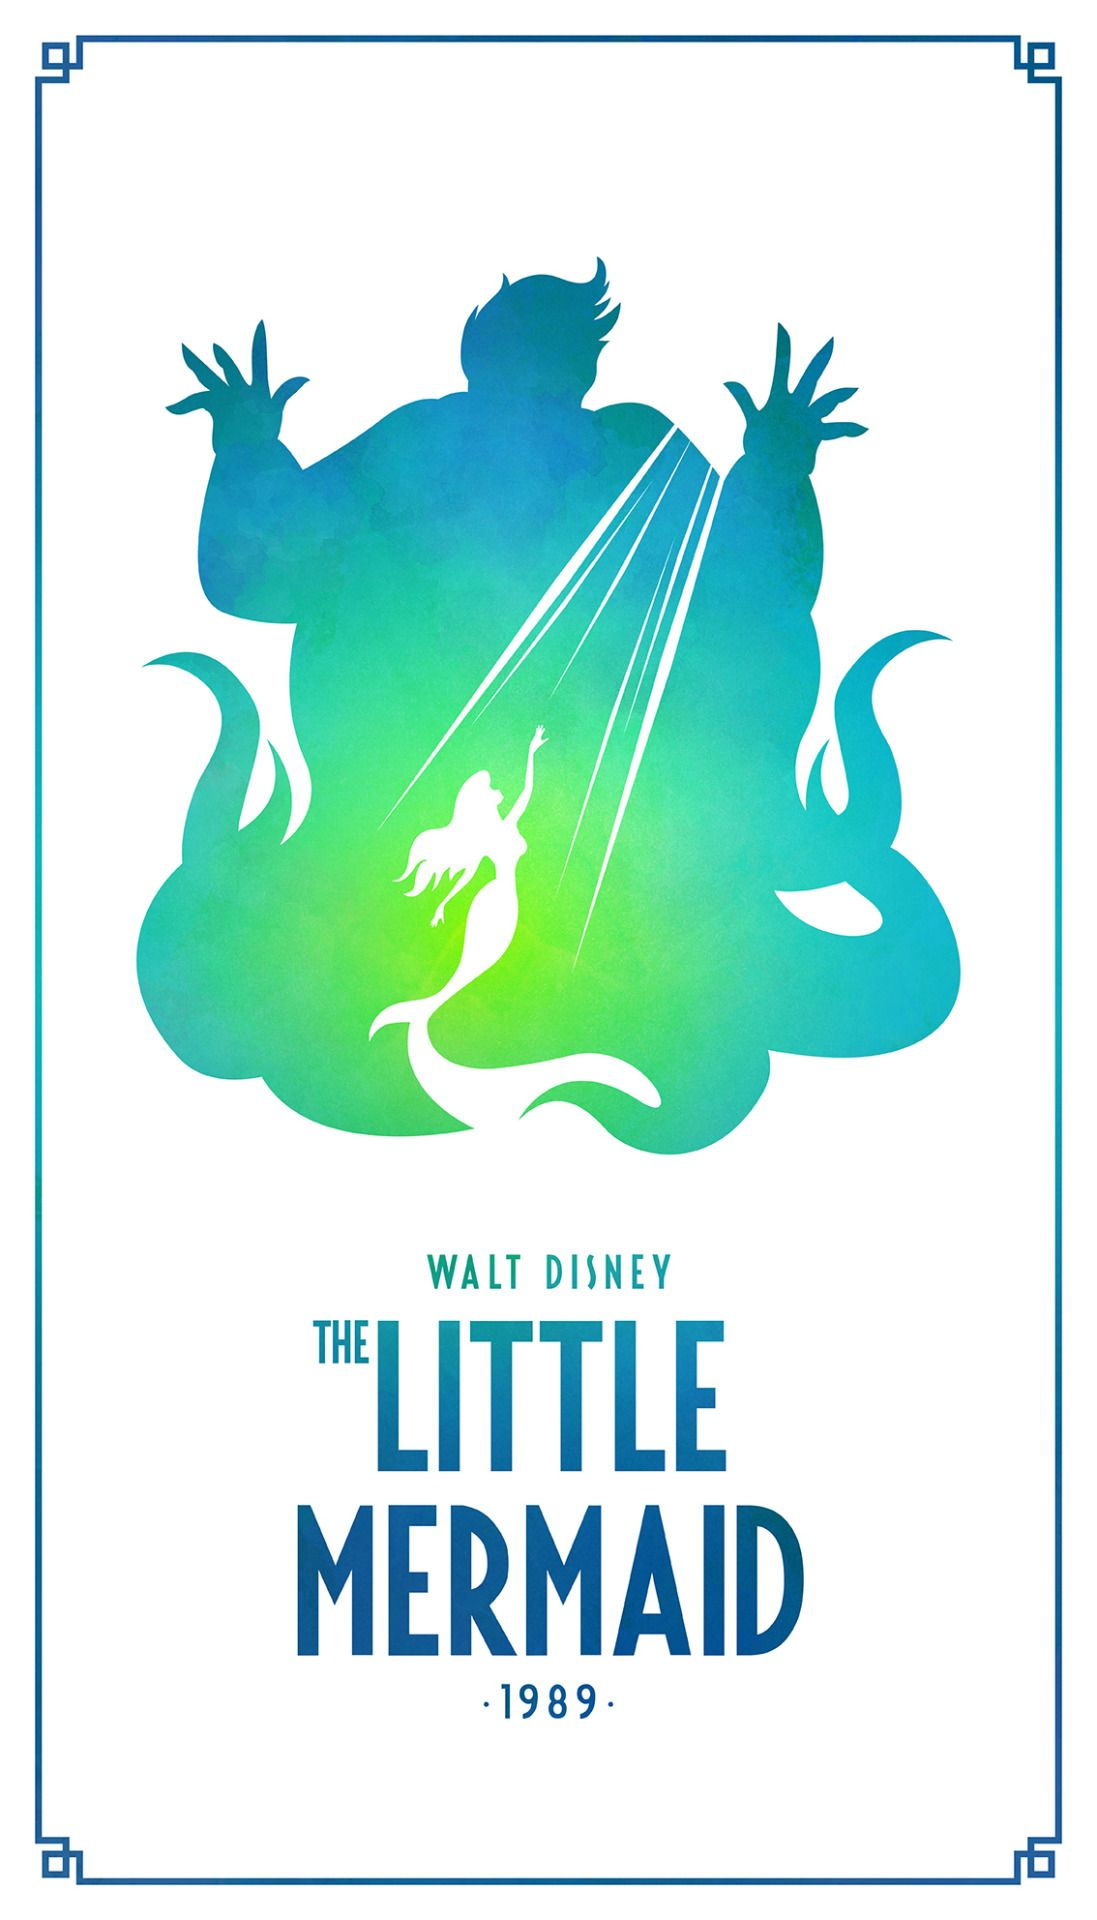 Classic Disney Movie Posters - Created by Keith Bogan #disneymovies